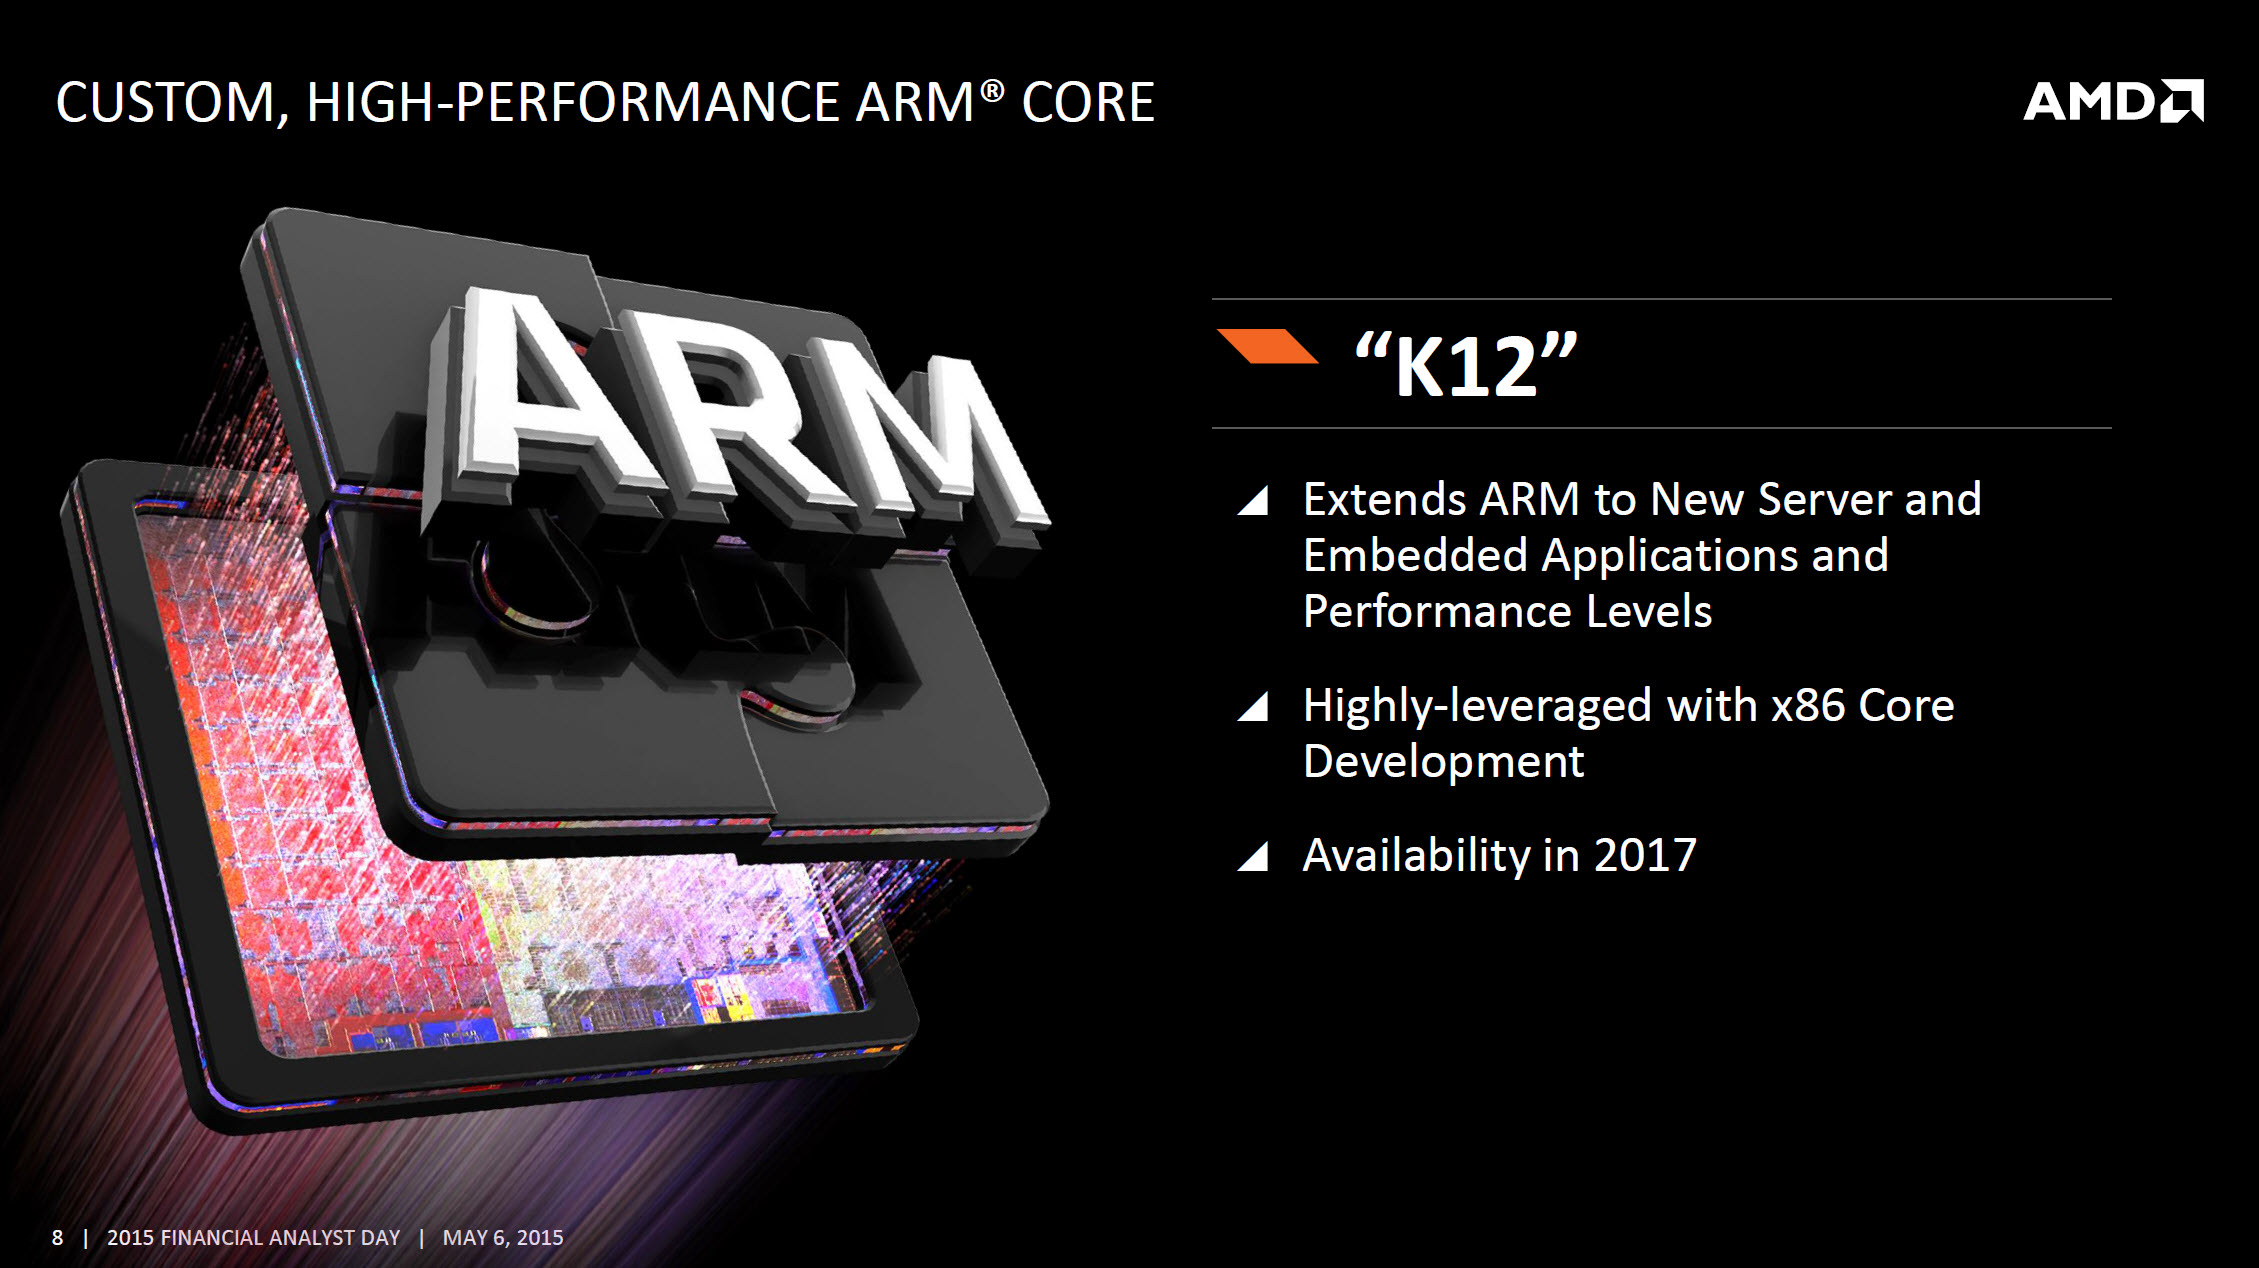 AMD ARM K12 Core High-Performance Custom